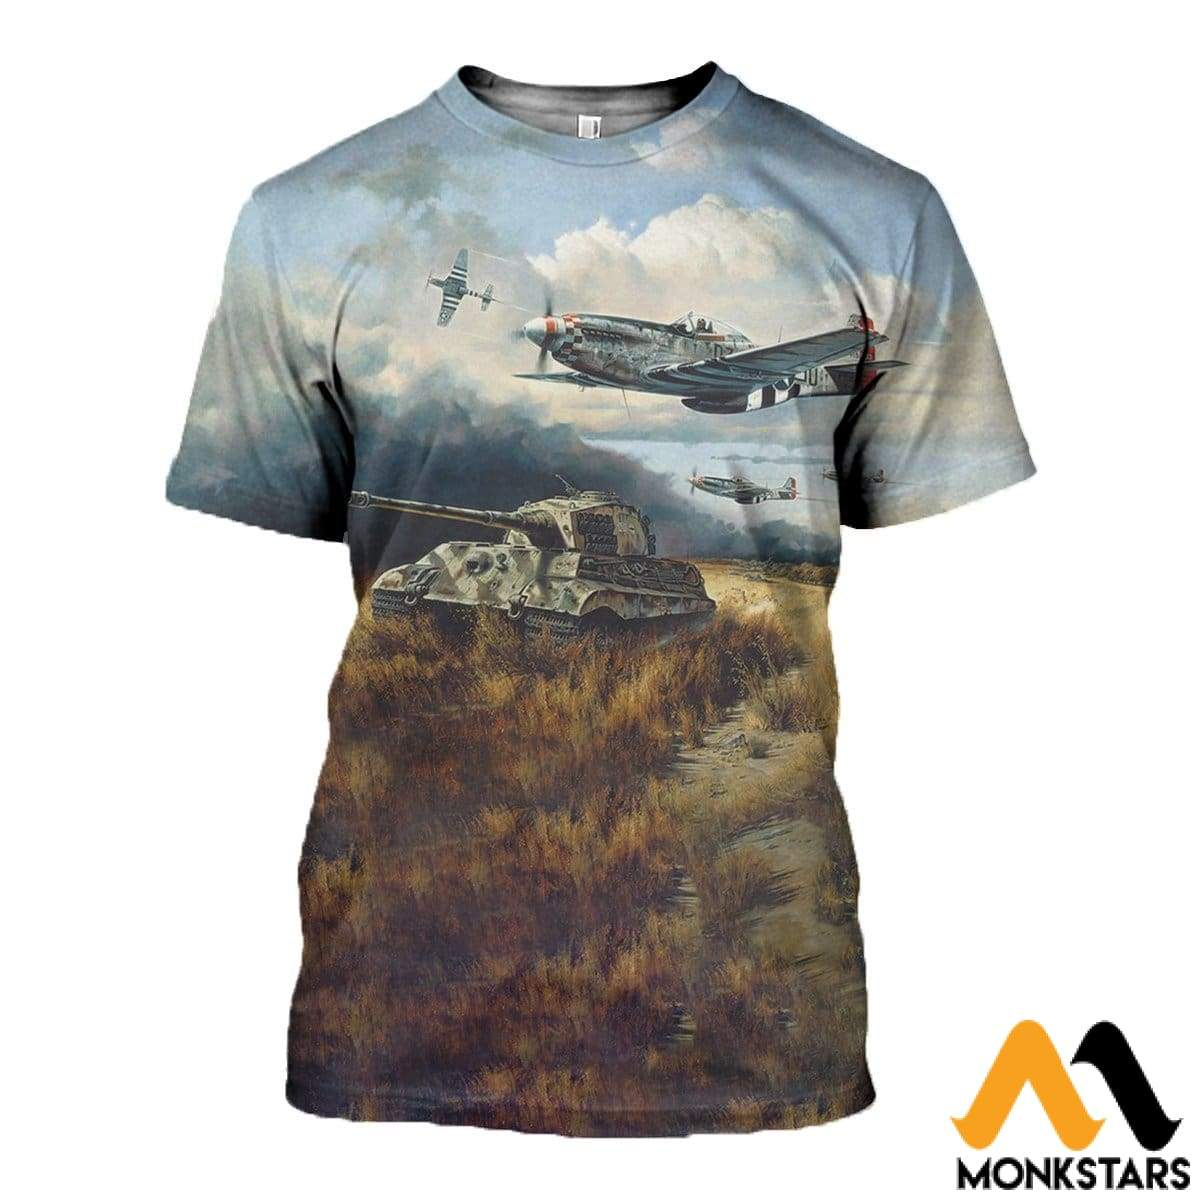 3D All Over Printed Tiger Hunt Shirts And Shorts T-Shirt / Xs Clothes